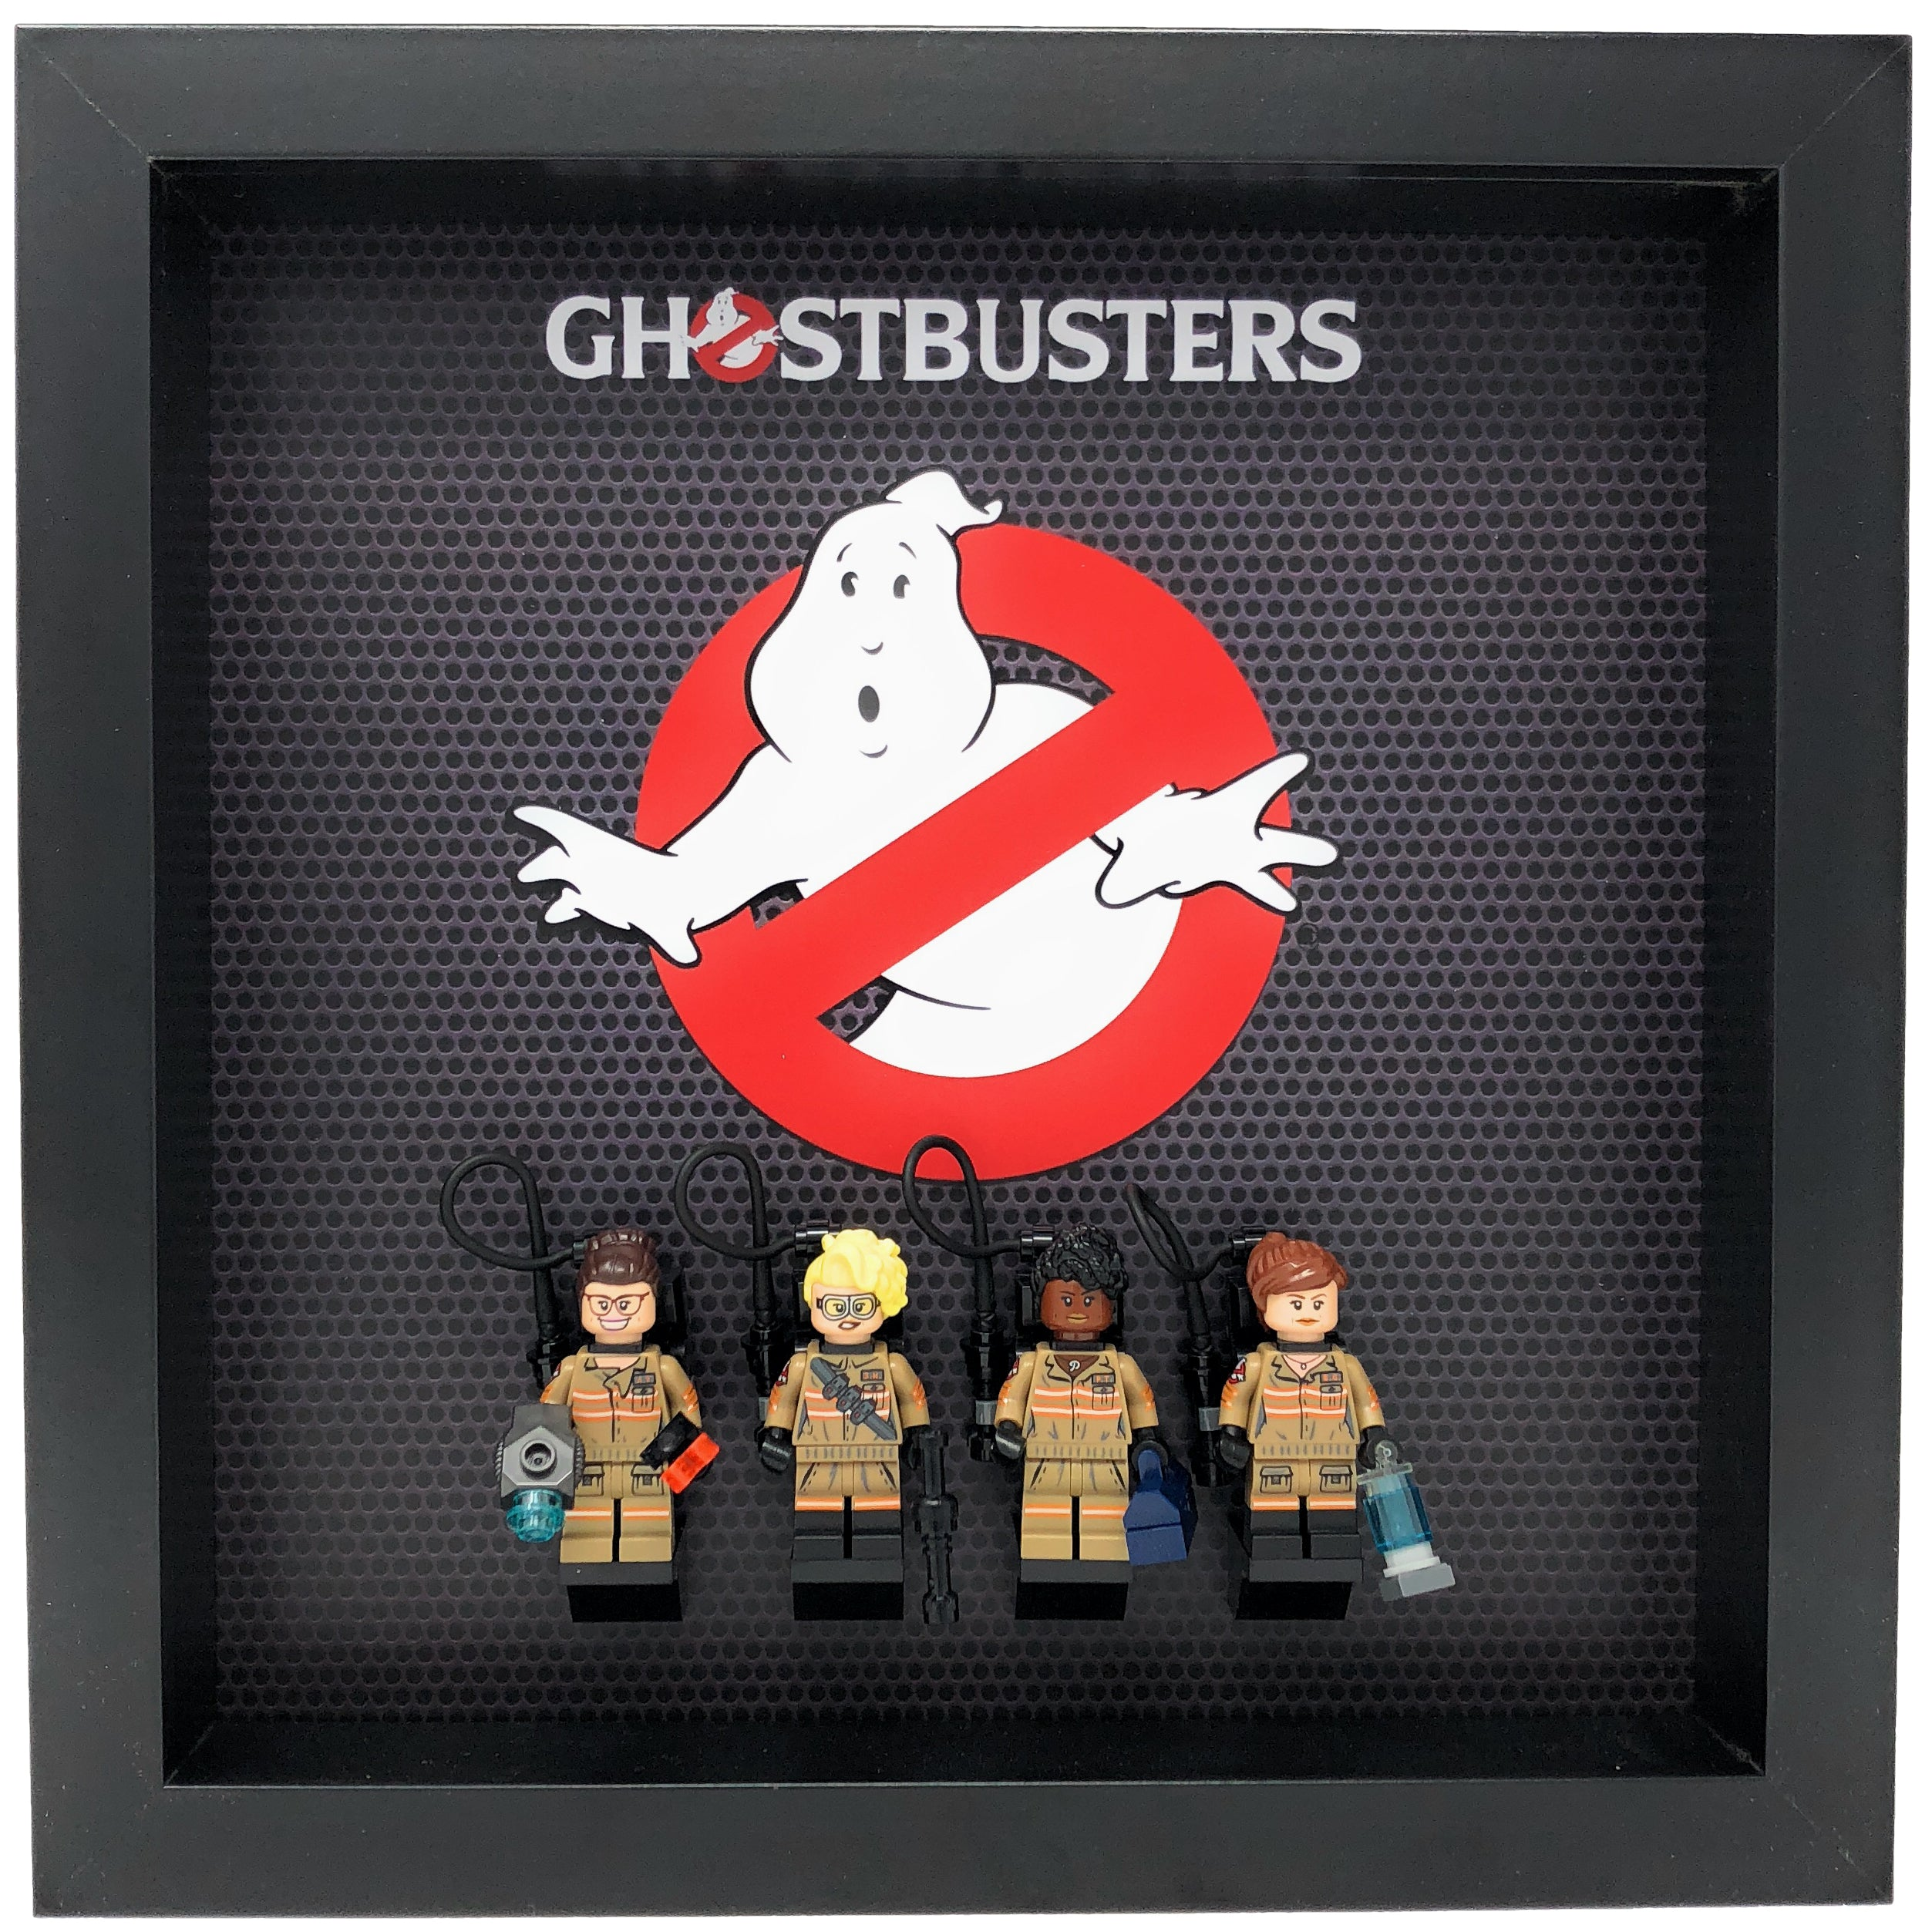 Display Frame For Ghostbusters Ecto 1 2 Minifigures Lego 75828 Ampamp M